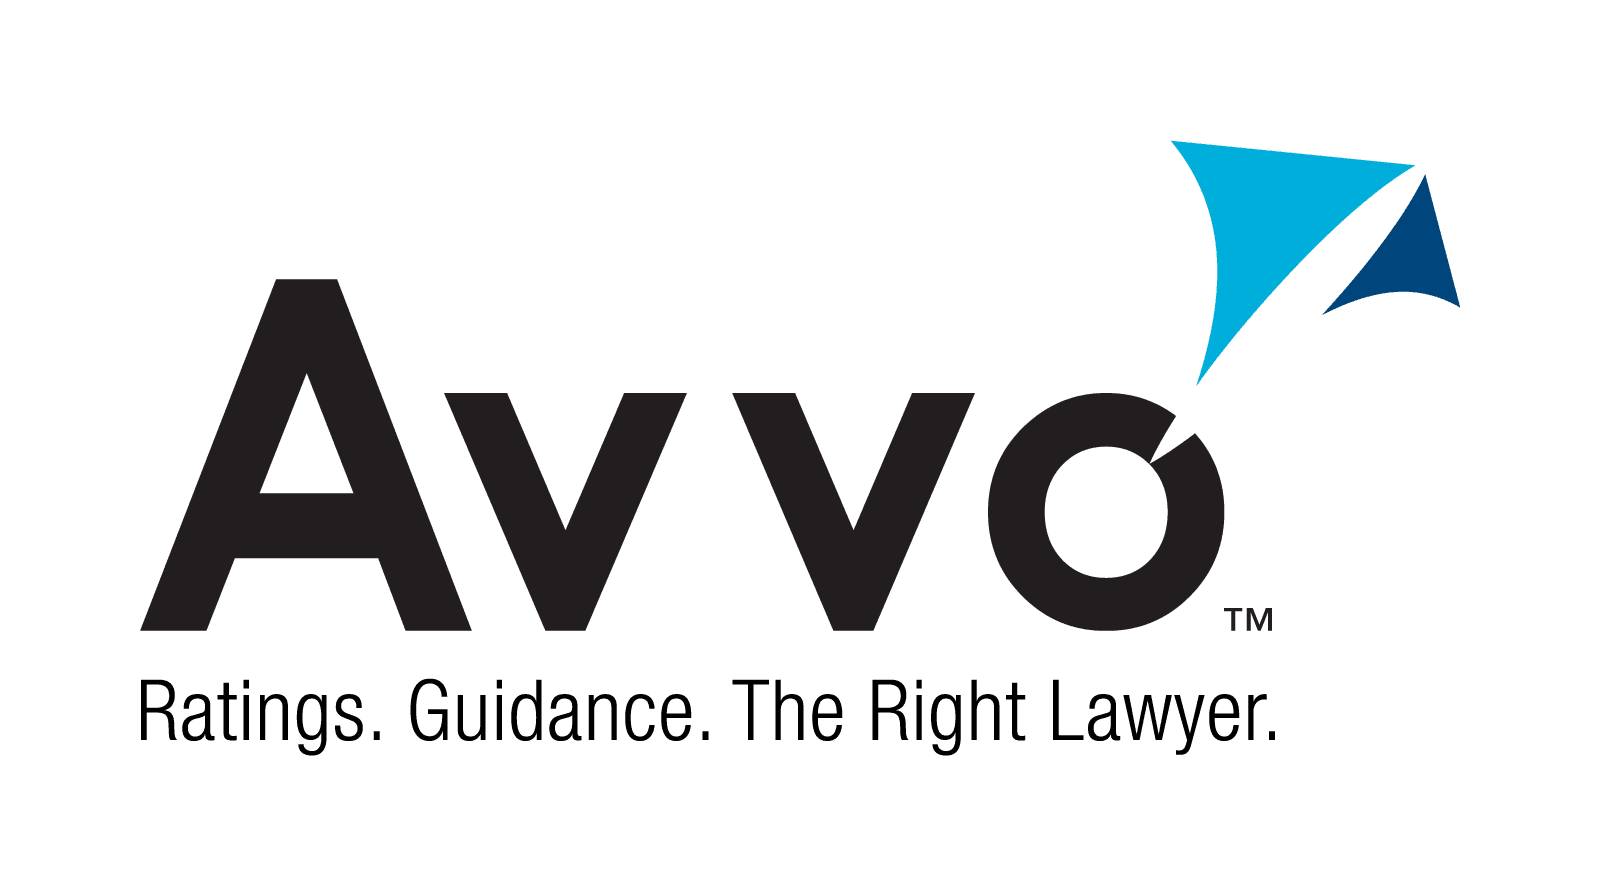 Avvo logo leave a review Mike Zimmerman